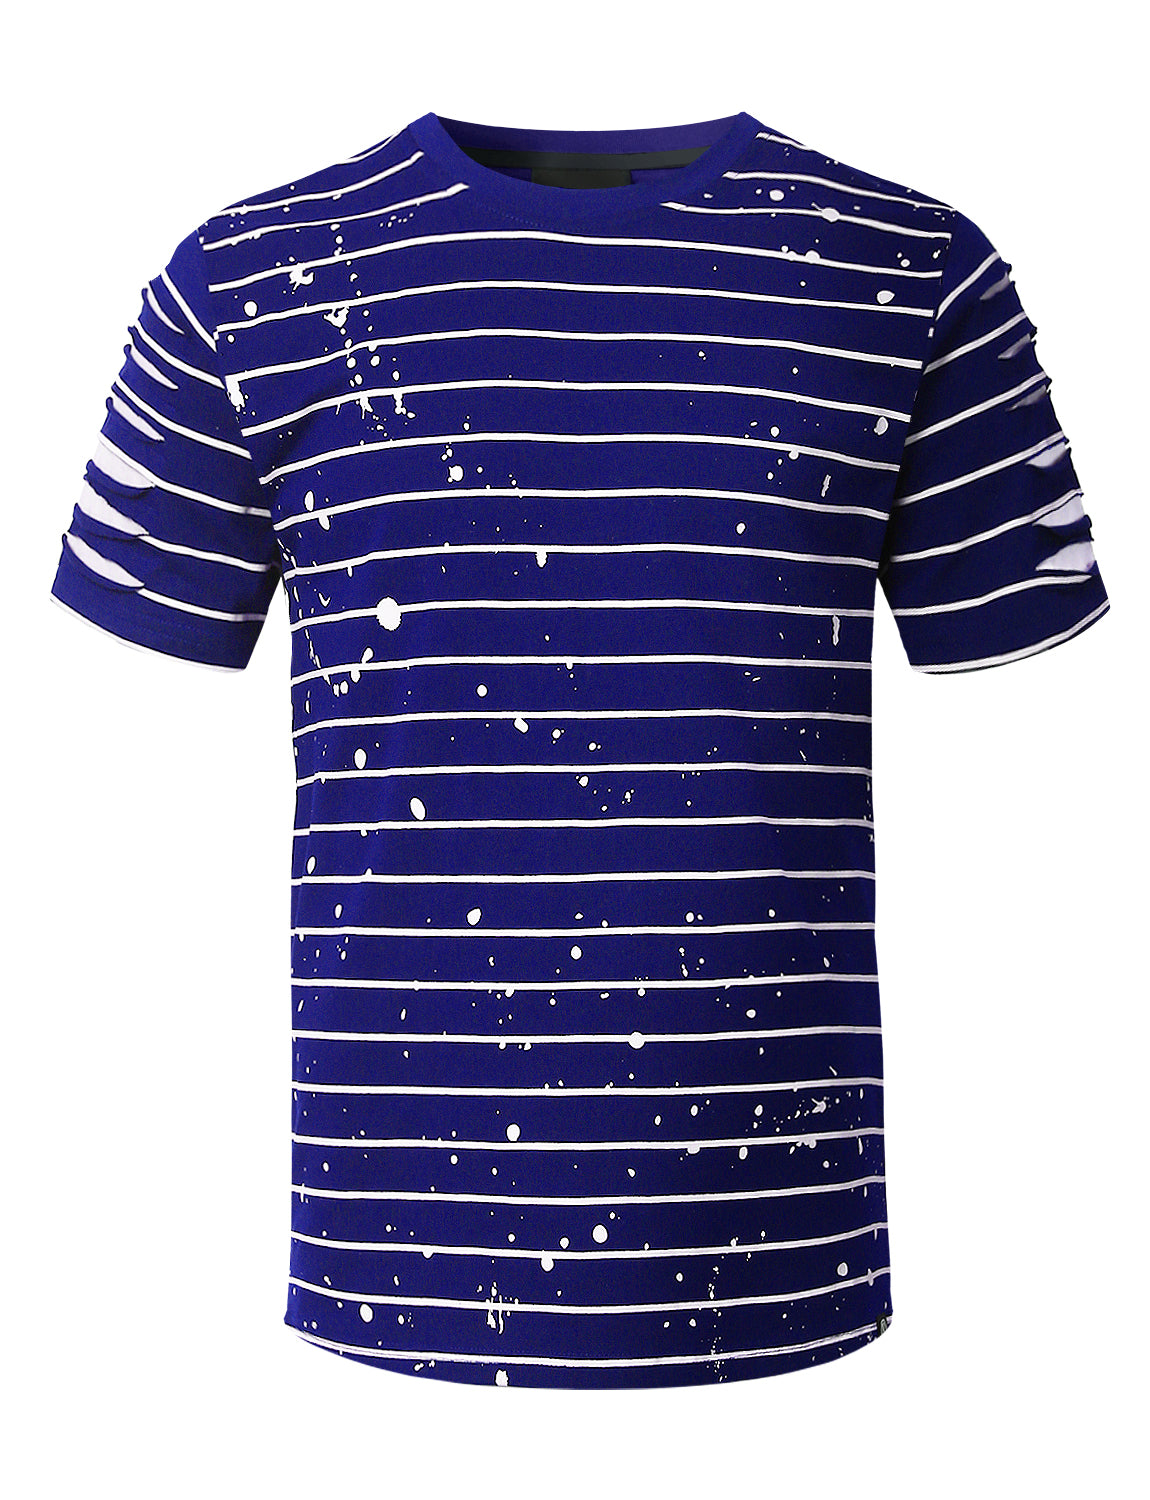 ROYAL Splatter Striped T-shirt - URBANCREWS